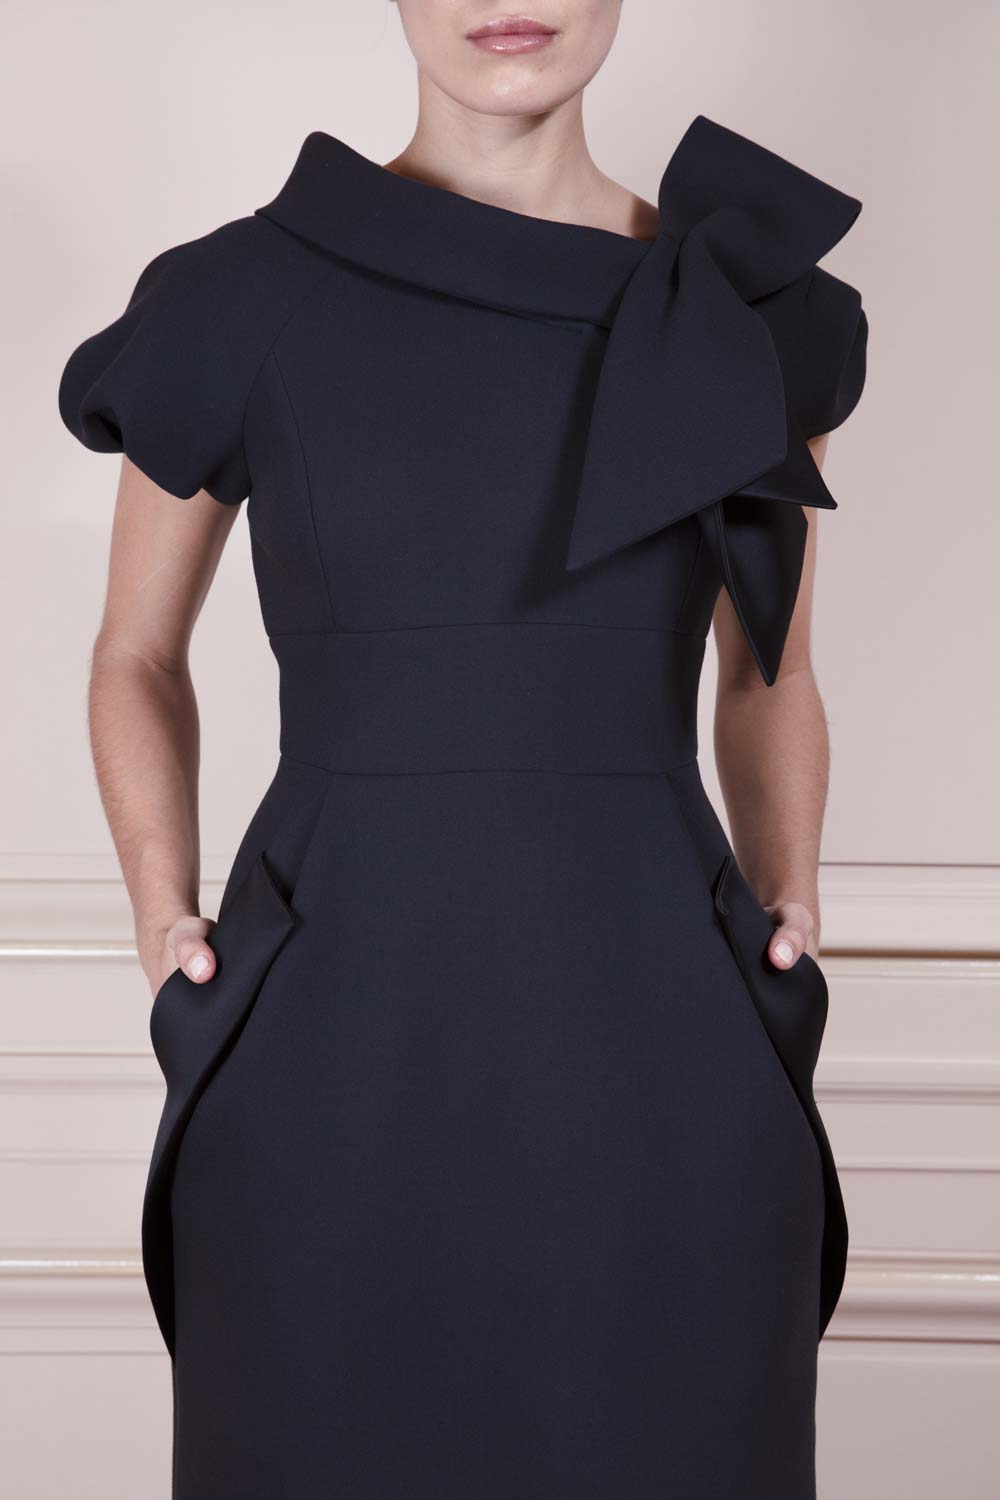 Midnight blue sheath dress with oversized black satin-backed bow